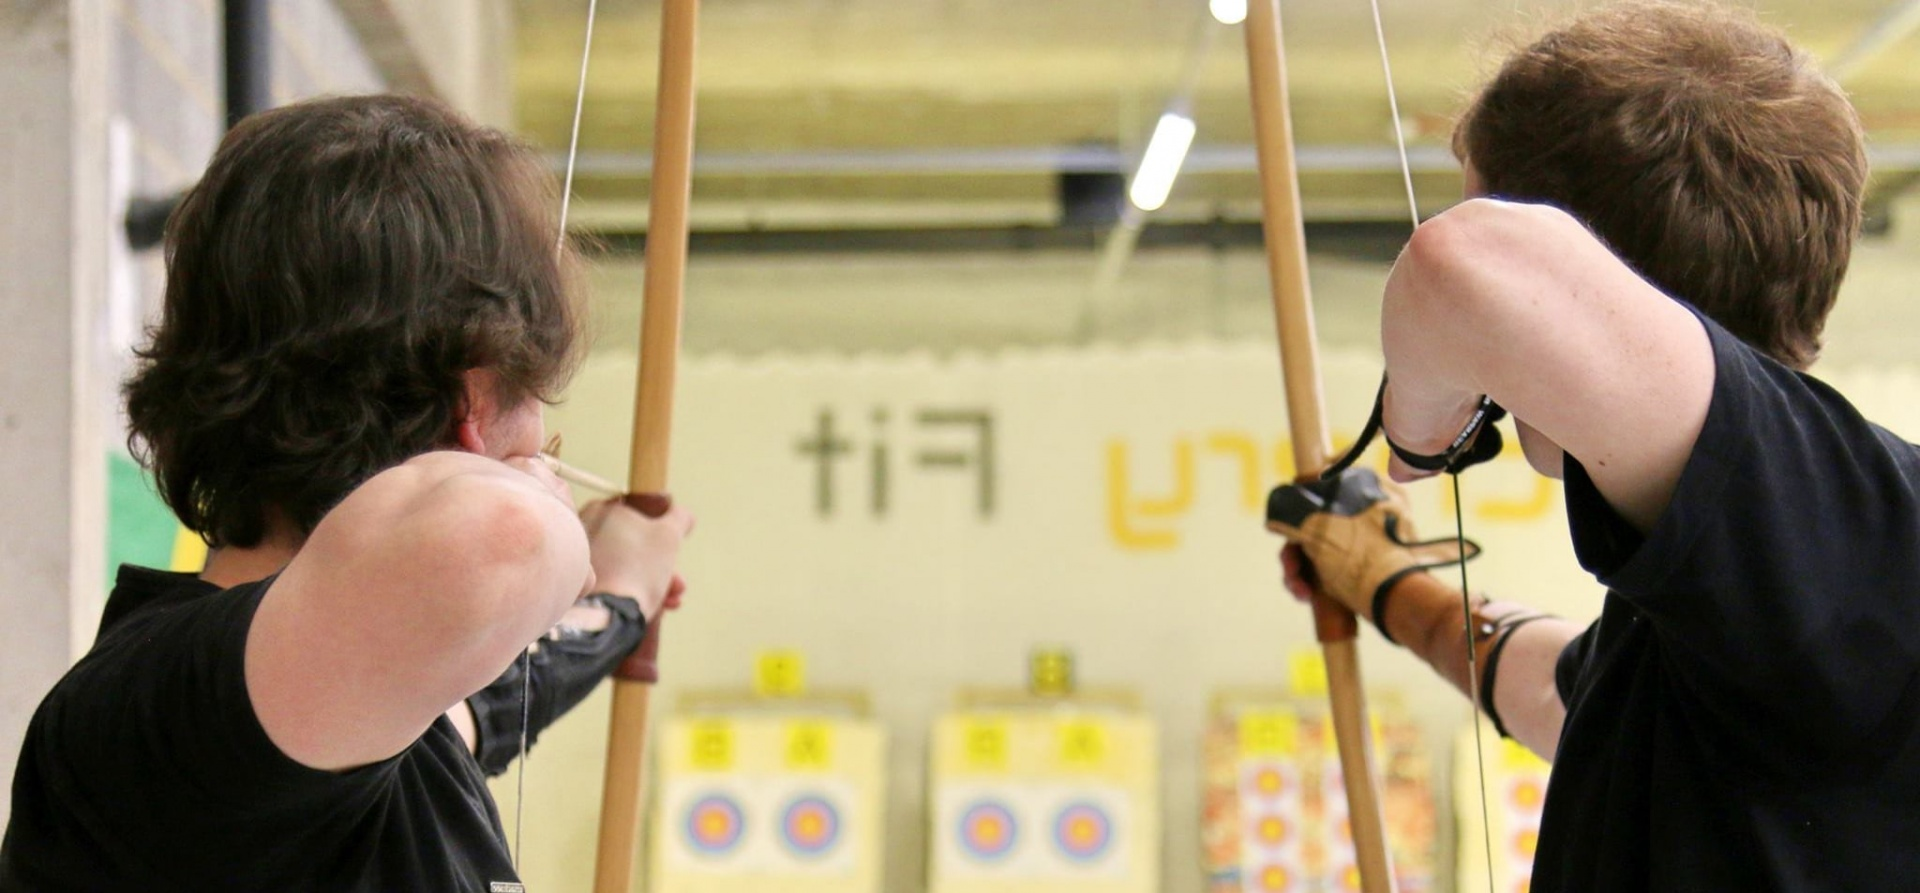 1.5 Hour Archery Lesson in London-3